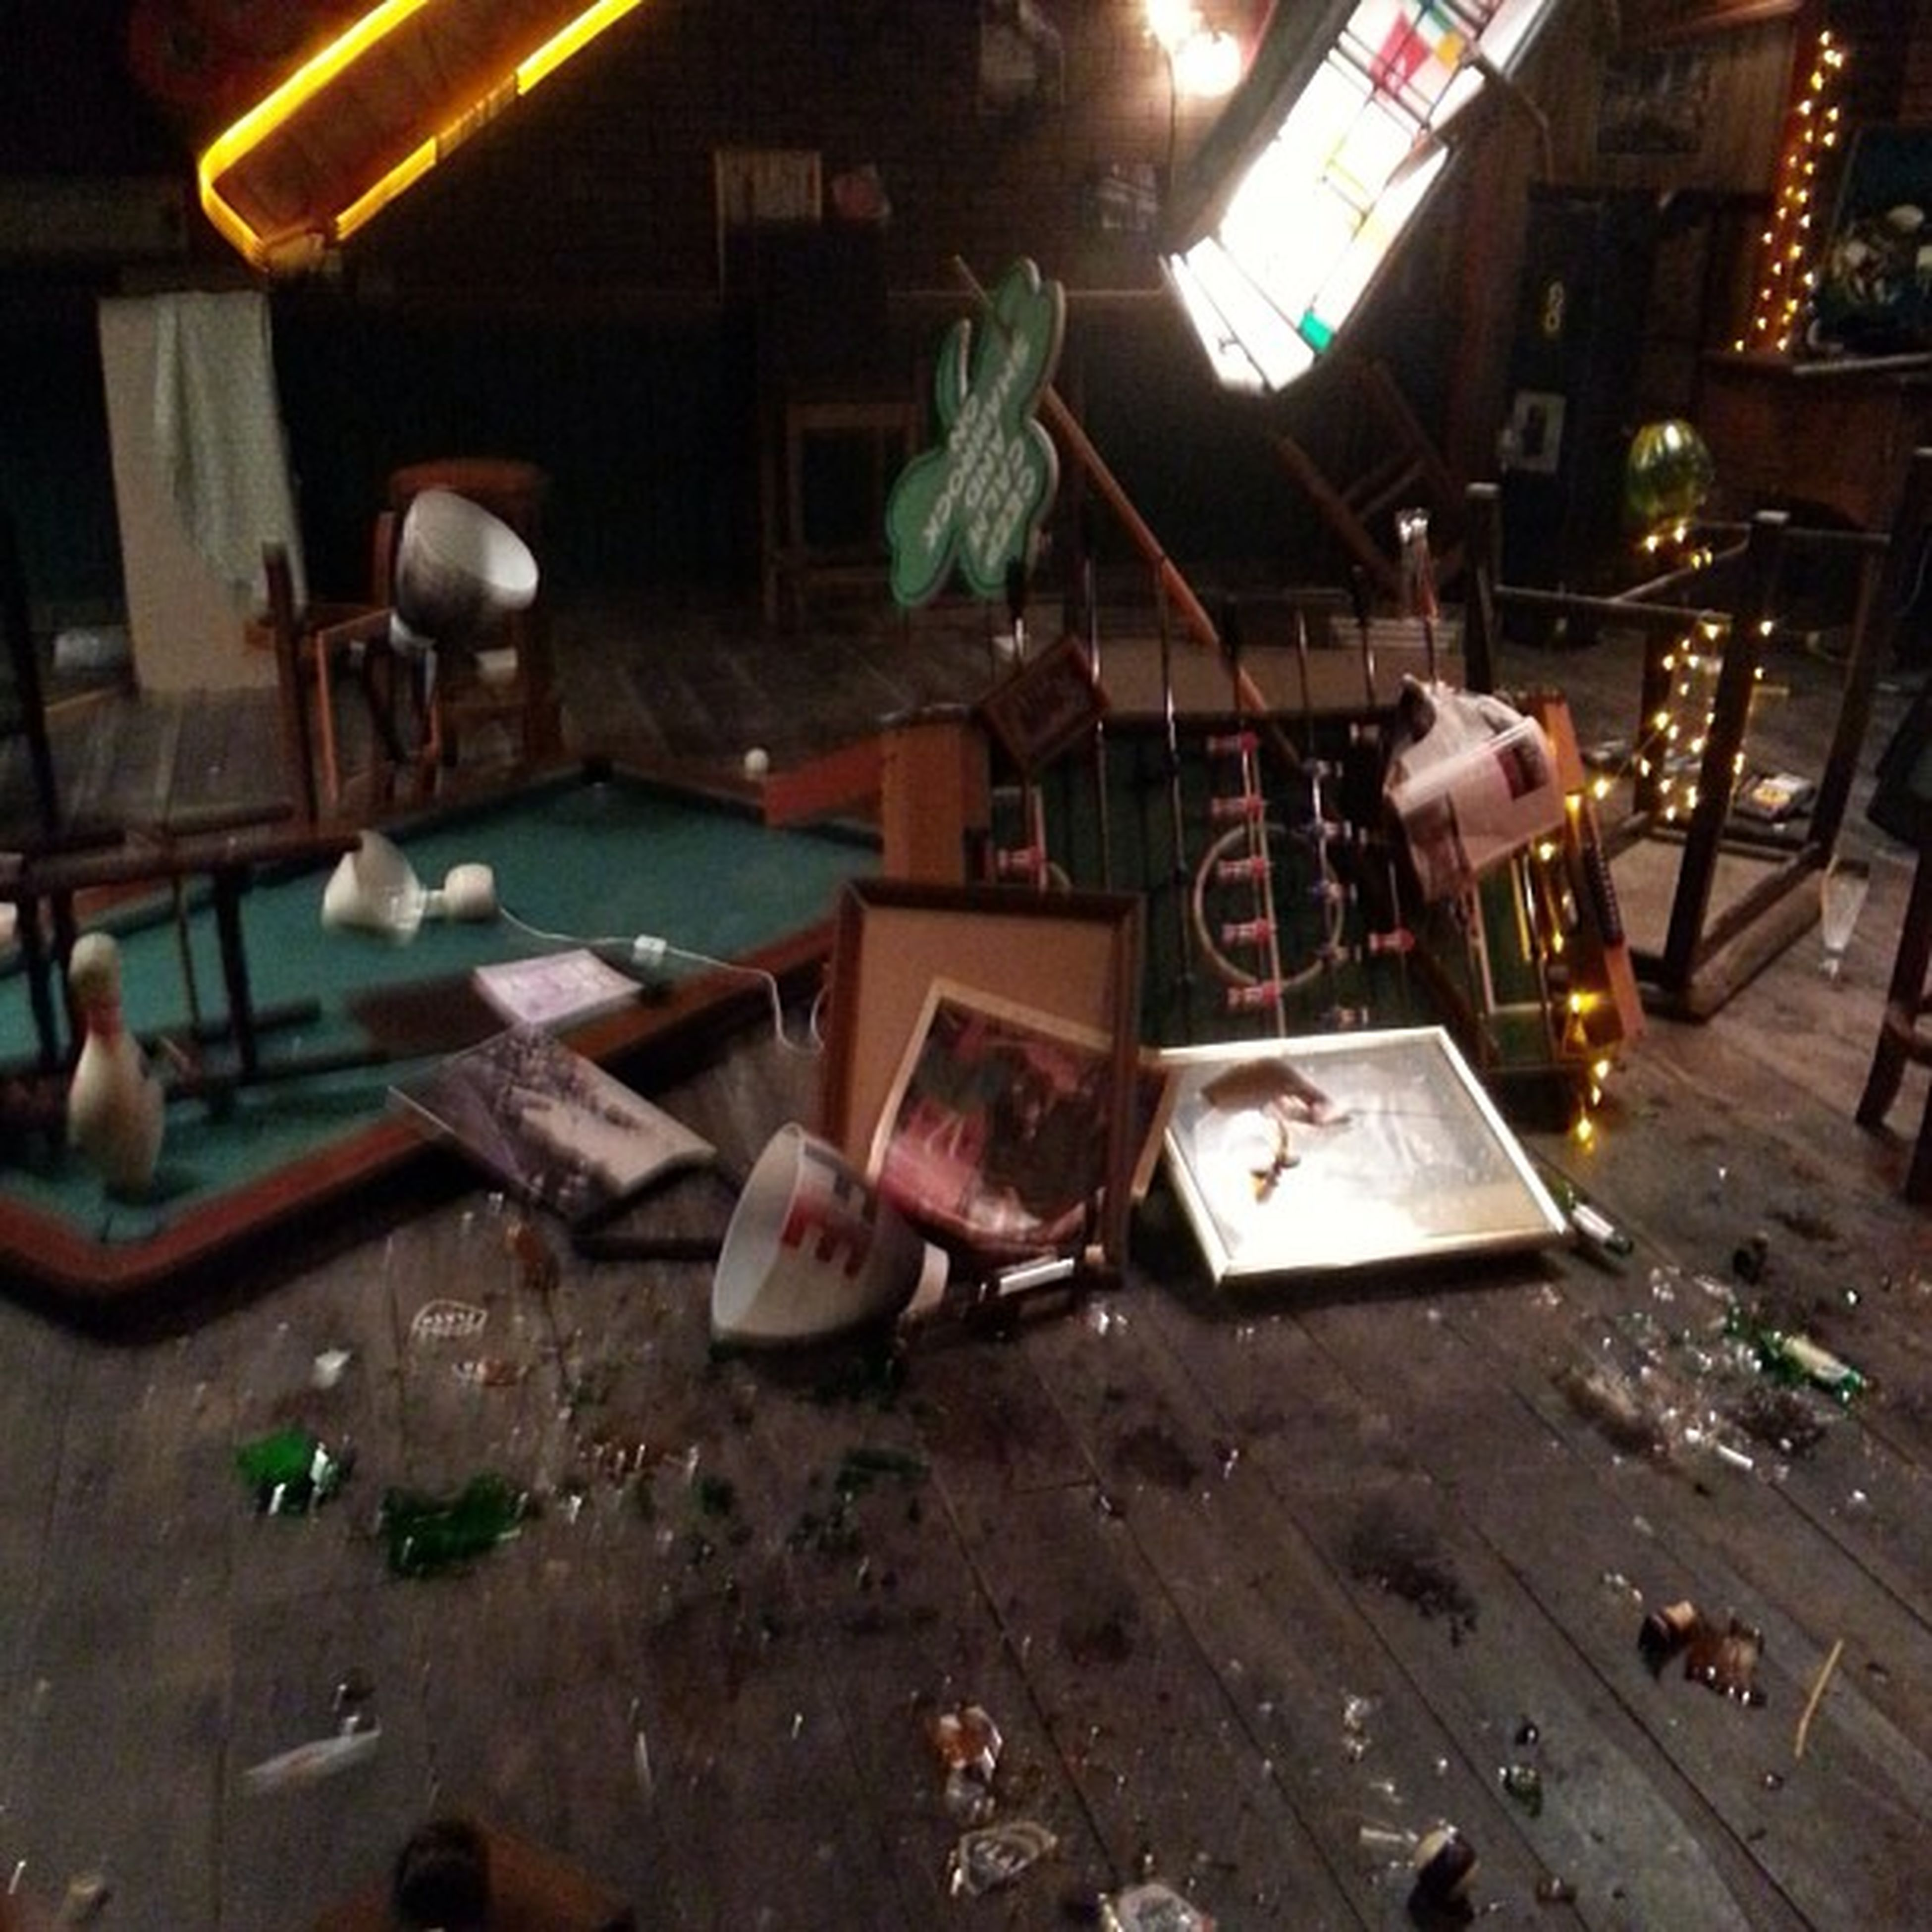 indoors, built structure, architecture, messy, abandoned, chair, night, table, building exterior, illuminated, house, high angle view, damaged, obsolete, no people, old, wood - material, absence